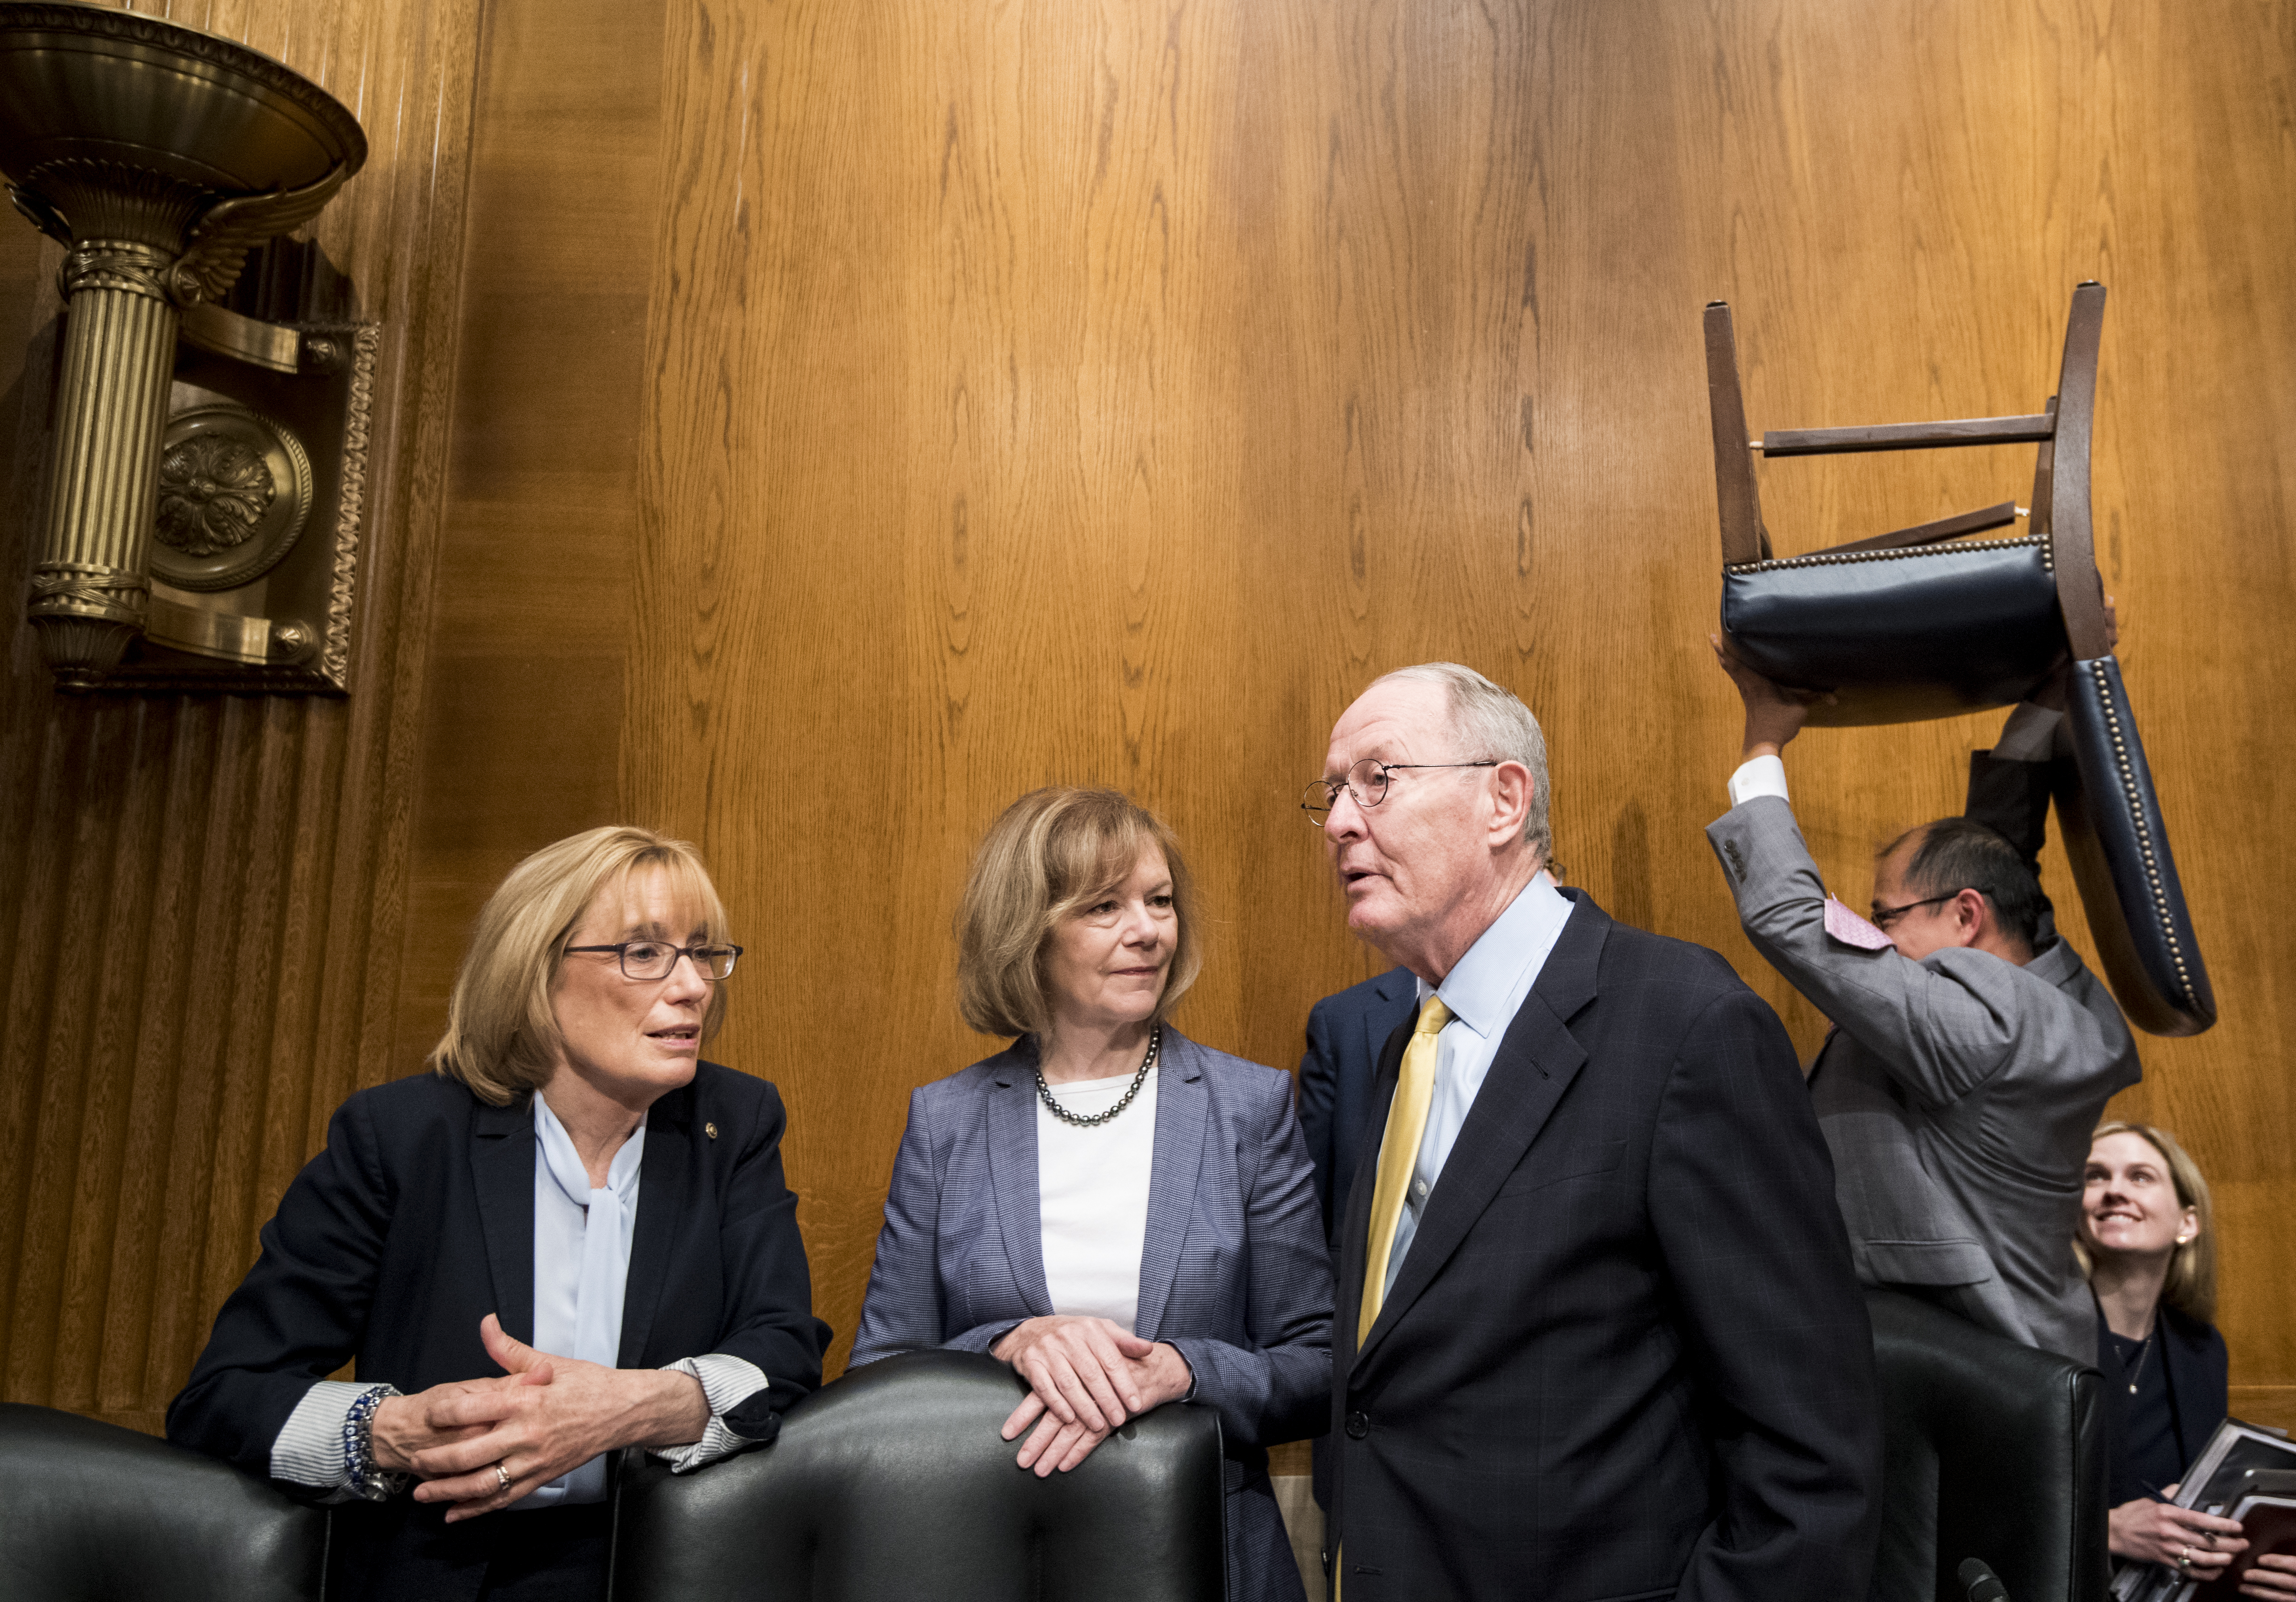 """UNITED STATES - JUNE 18: From left, Sen. Maggie Hassan, D-N.H., Sen. Tina Smith, D-Minn., and chairman Sen. Lamar Alexander, R-Tenn., talk as a staffer carries a chair behind them before the start of the Senate Health, Education, Labor and Pensions Committee hearing on the """"Lower Health Care Costs Act of 2019""""on Tuesday, June 18, 2019. (Photo By Bill Clark/CQ Roll Call)"""